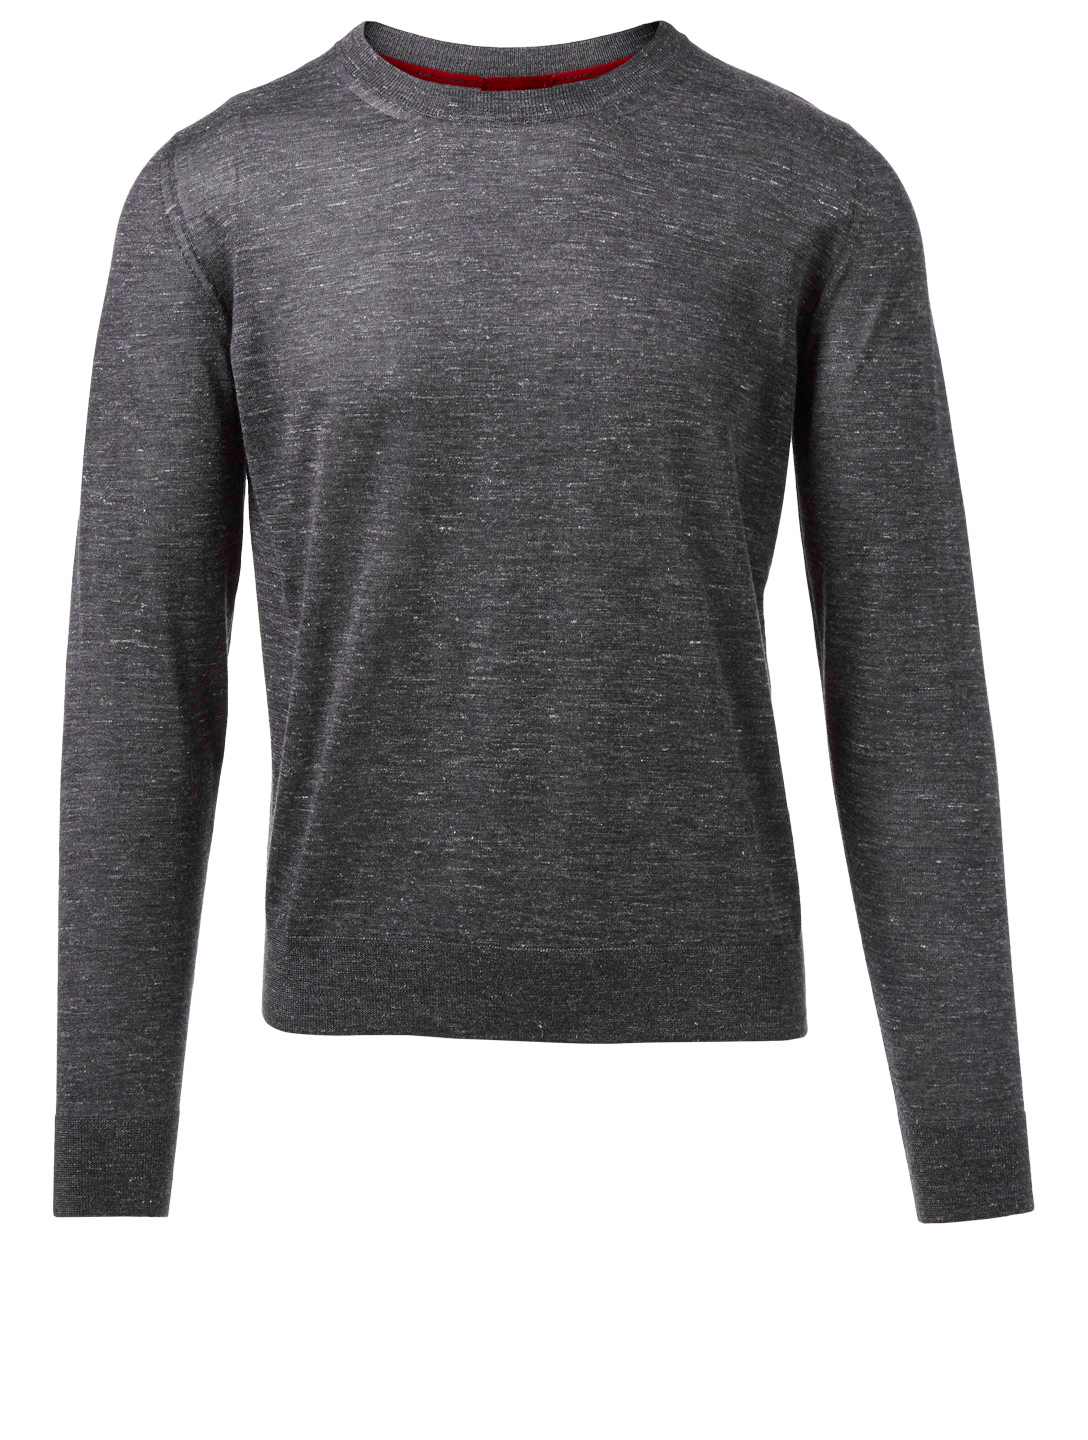 ISAIA Mélange Knit Sweater Men's Grey